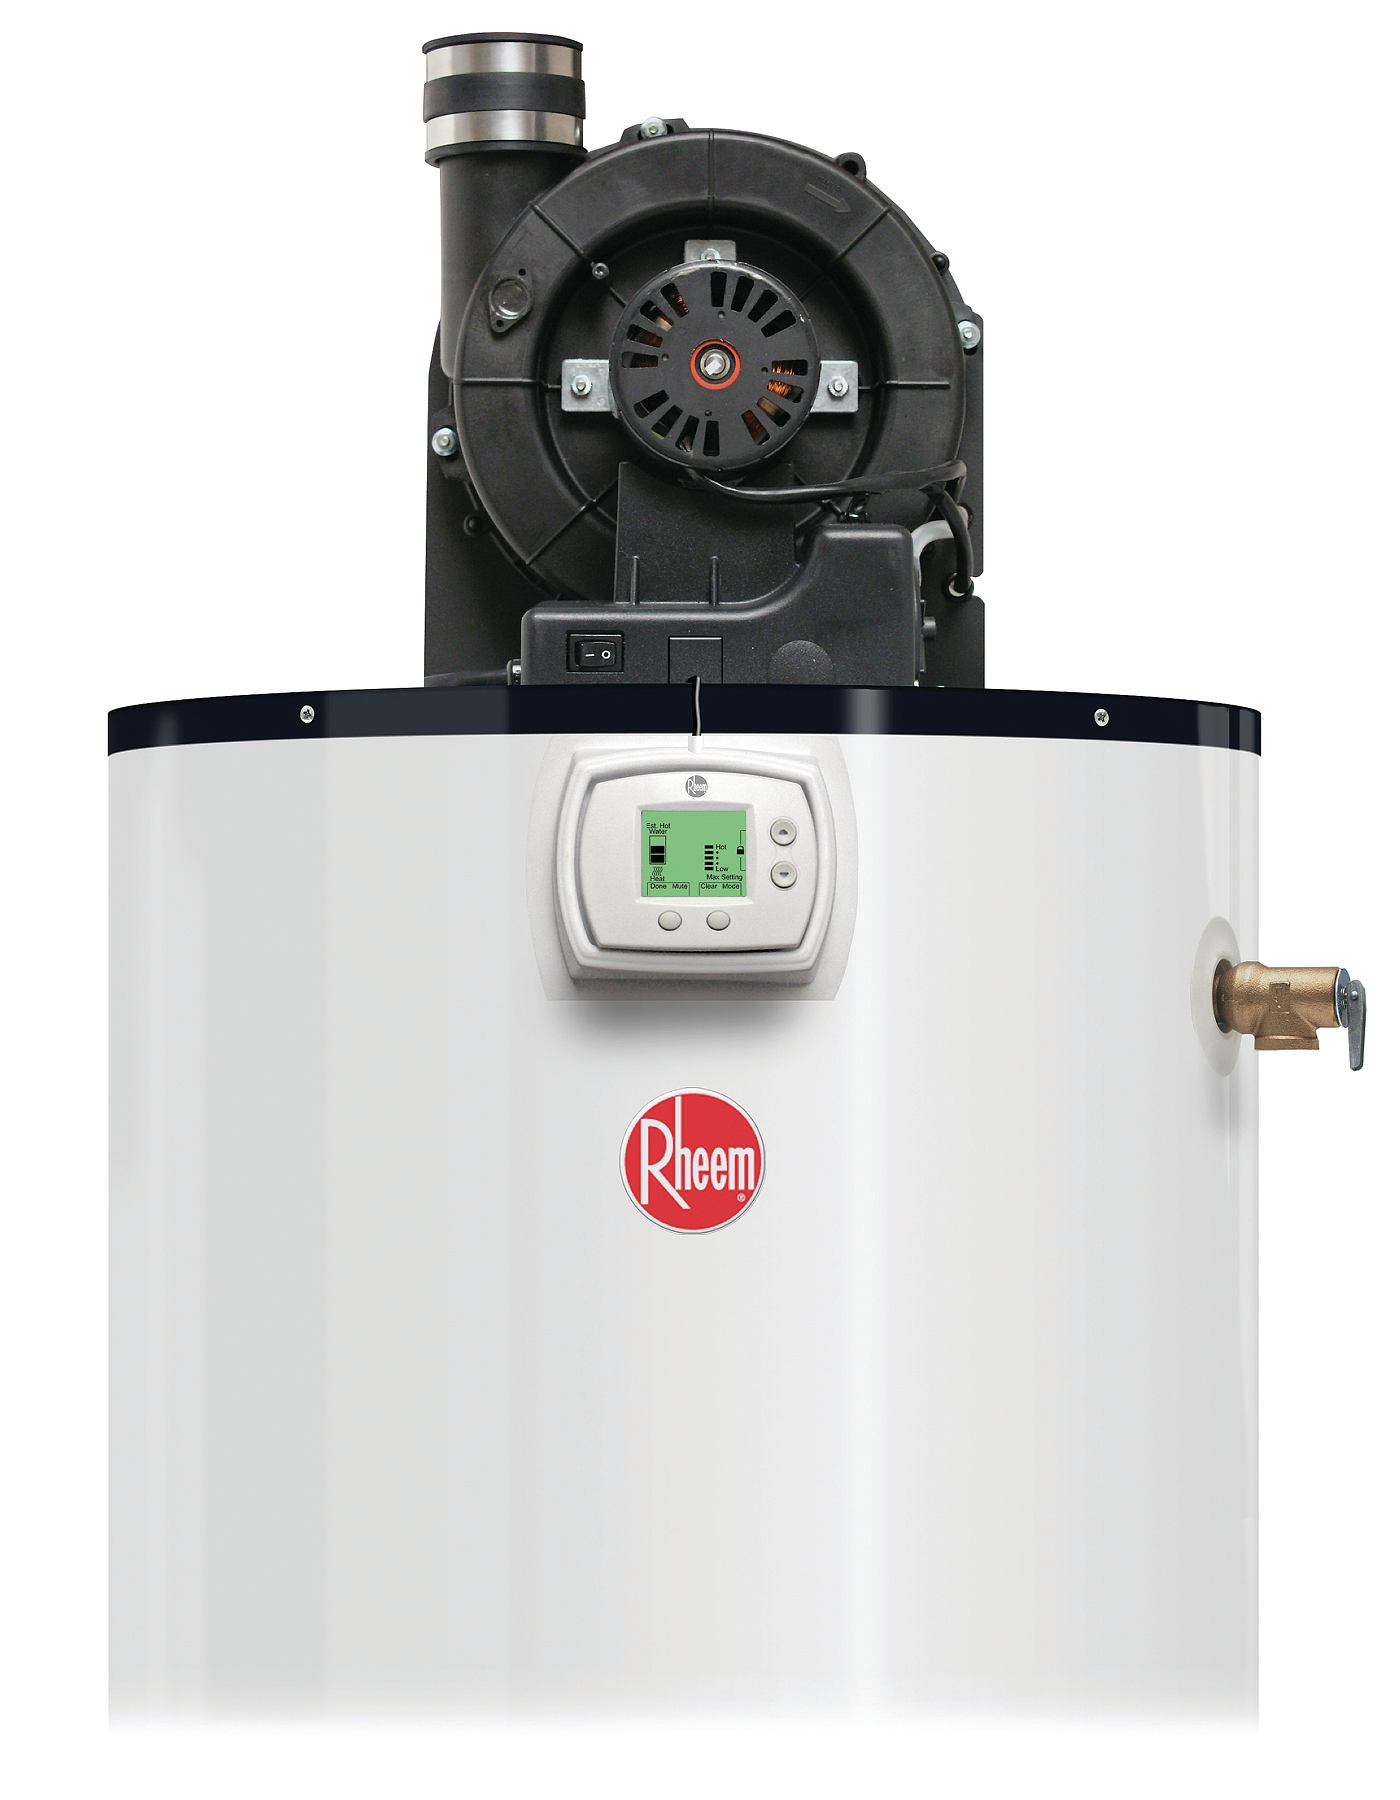 How to vent a hot water heater - Rheem Power Vent Water Heater Lcd Display Builder Magazine Products Electrical Water Heaters Jeff Mahoney Rheem Manufacturing Co Rheem